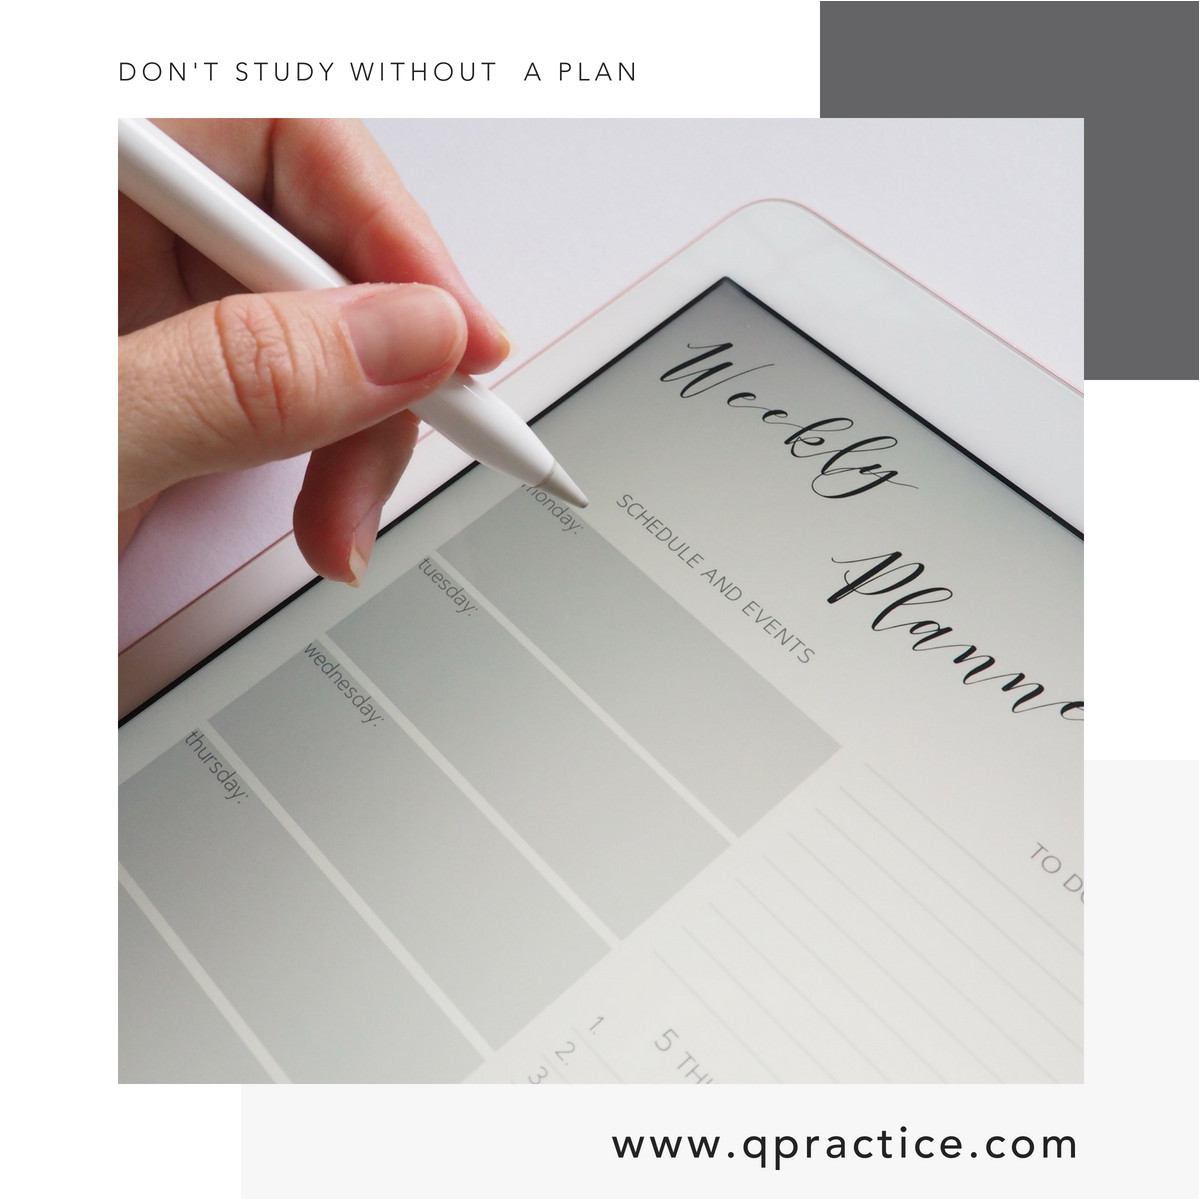 What Does Ncidq Stand for Pin by Qpractice On Beat Ncidq Overwhelm Pinterest How to Plan